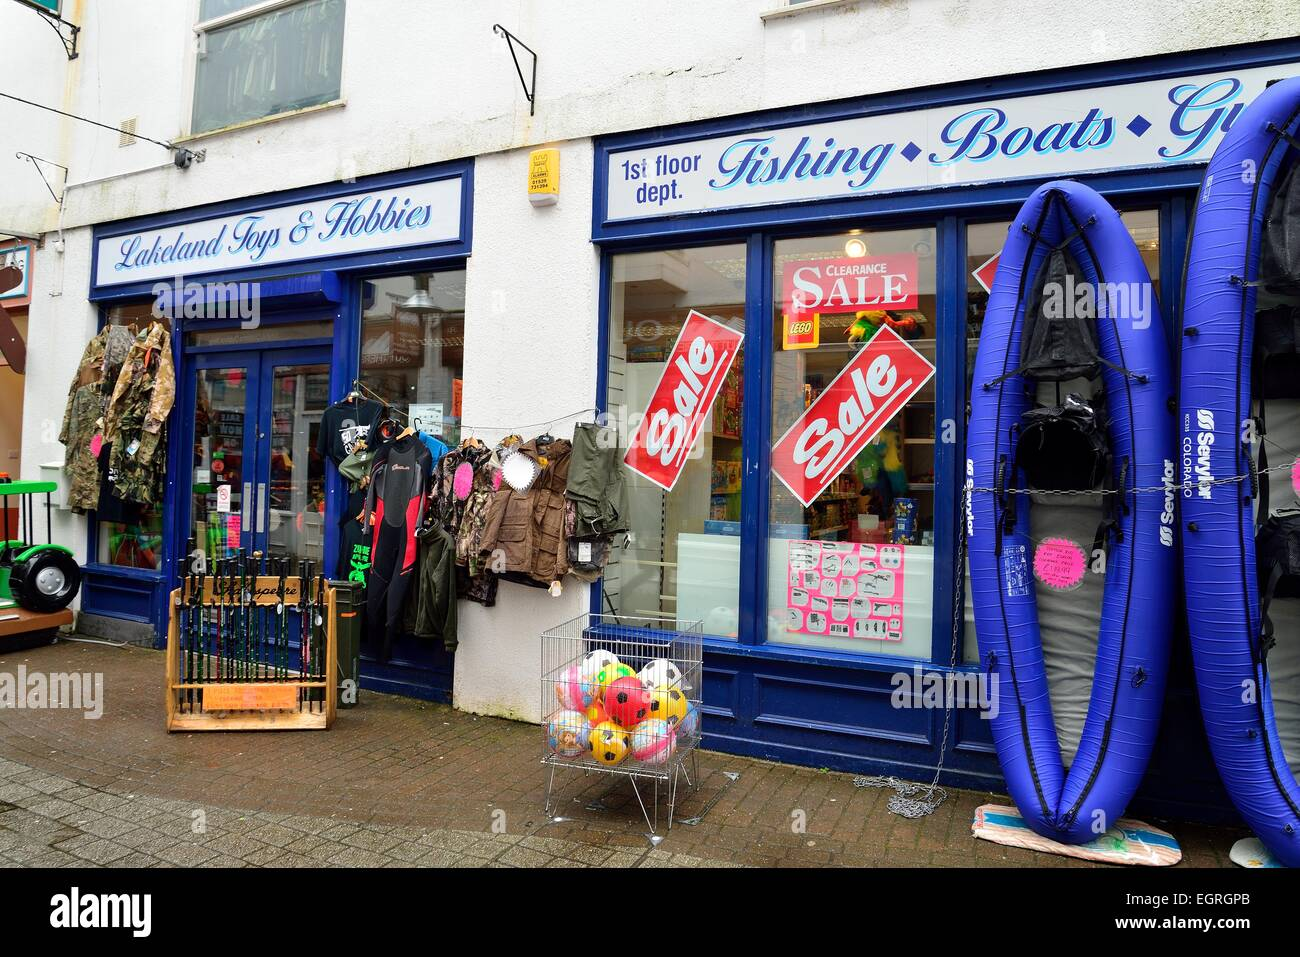 lakeland toys and hobbies shop in keswick cumbria - Stock Image